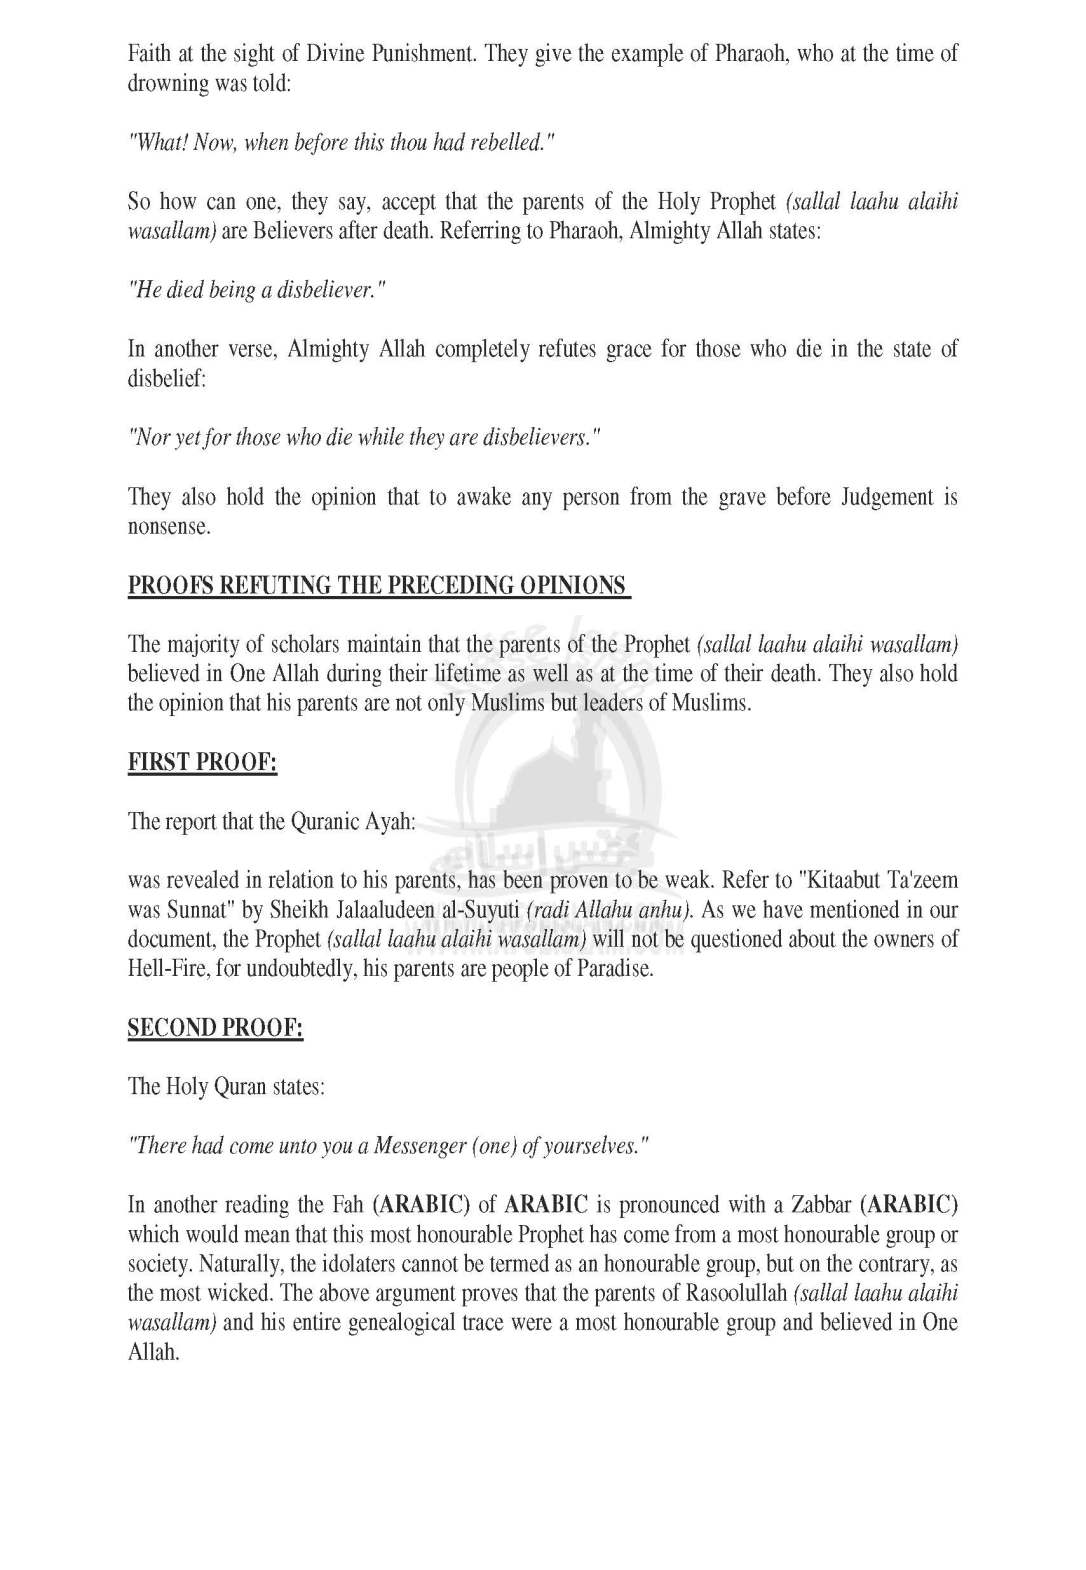 ParentsofHolyProphet_Page_03